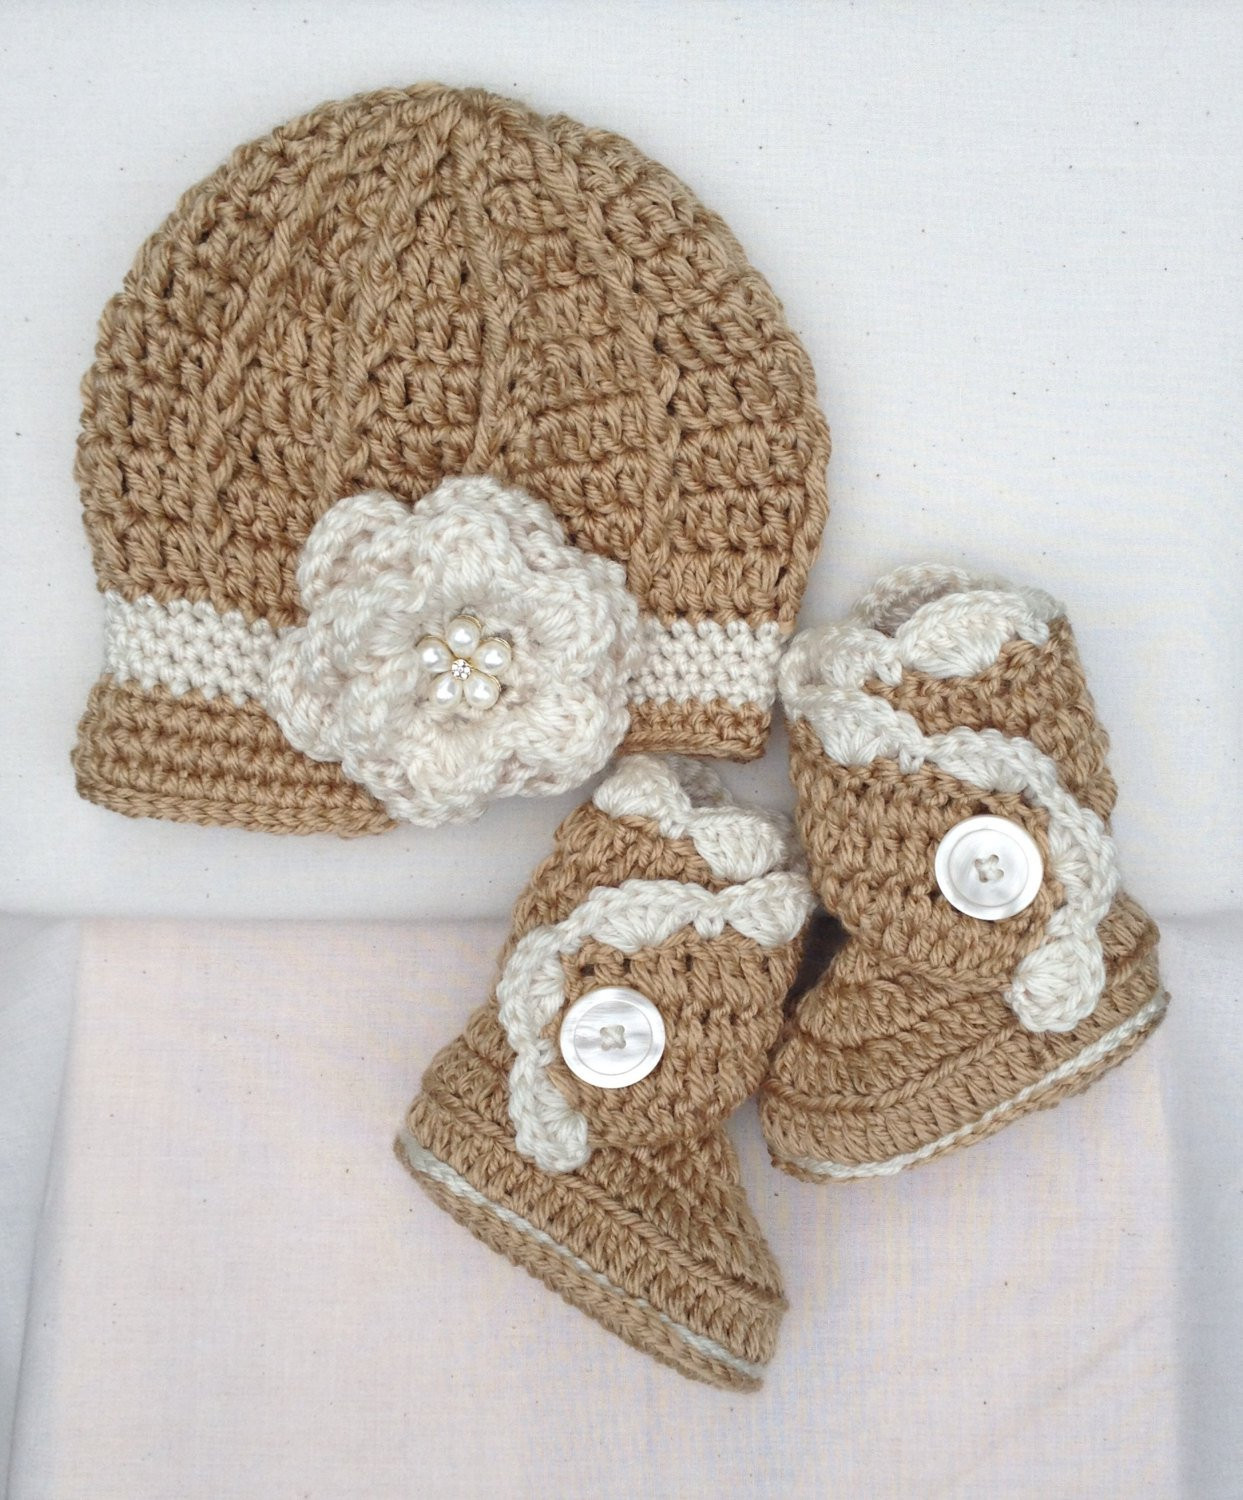 ugg crochet boots youth ugg boots how much are ugg boots